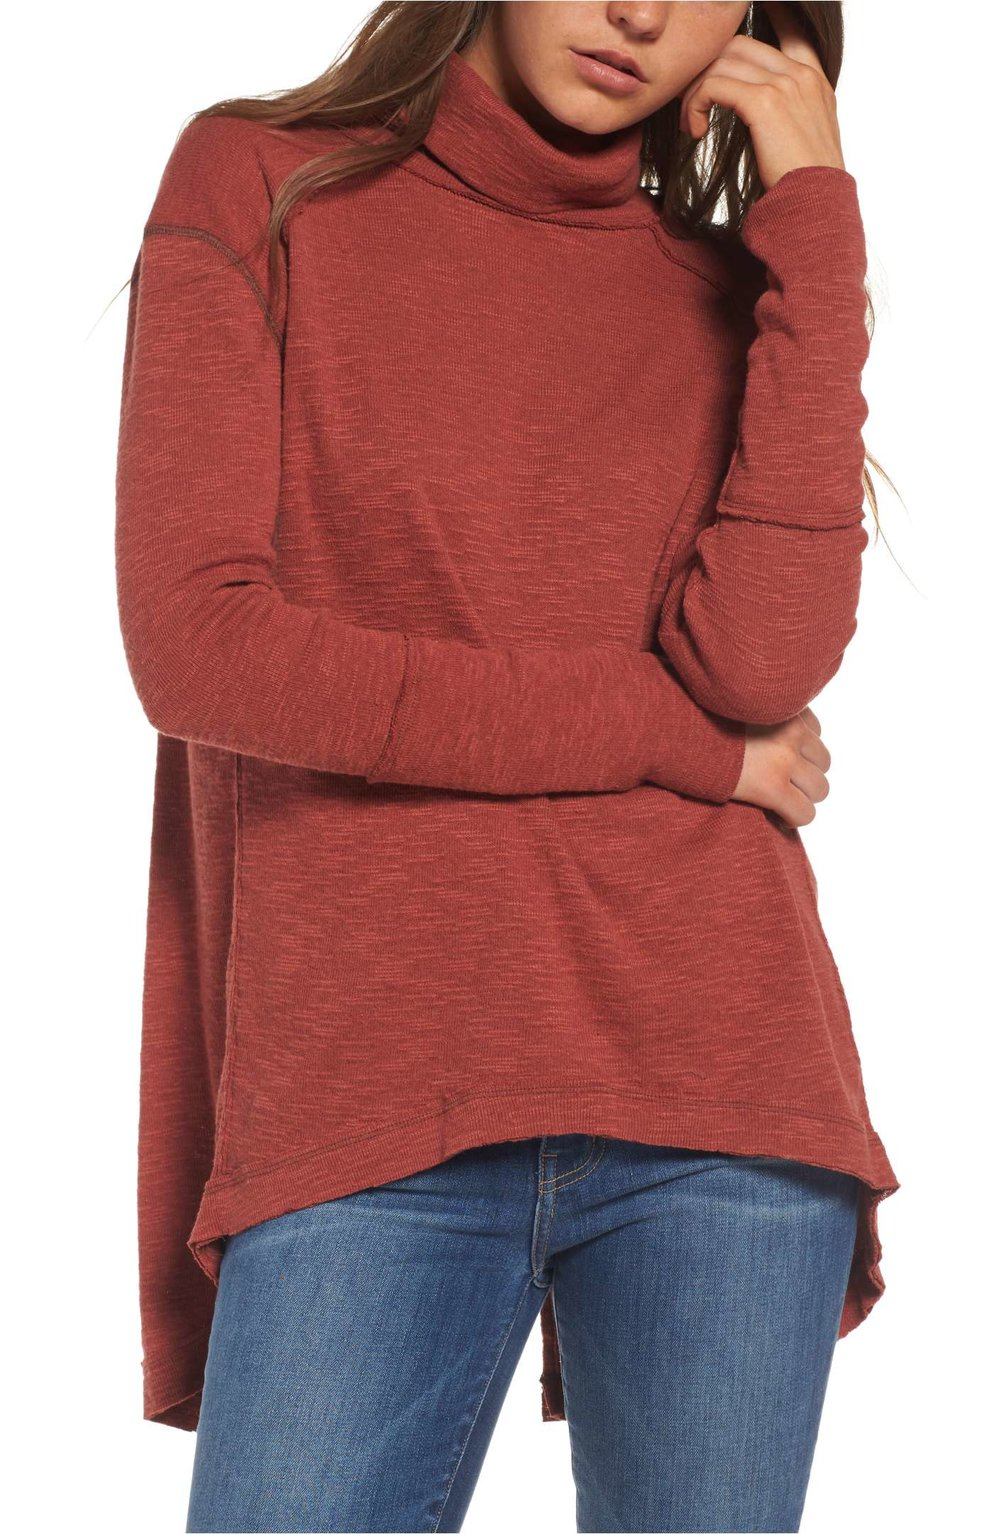 Sale: $44.90 - Free People Split Back Turtleneck in red